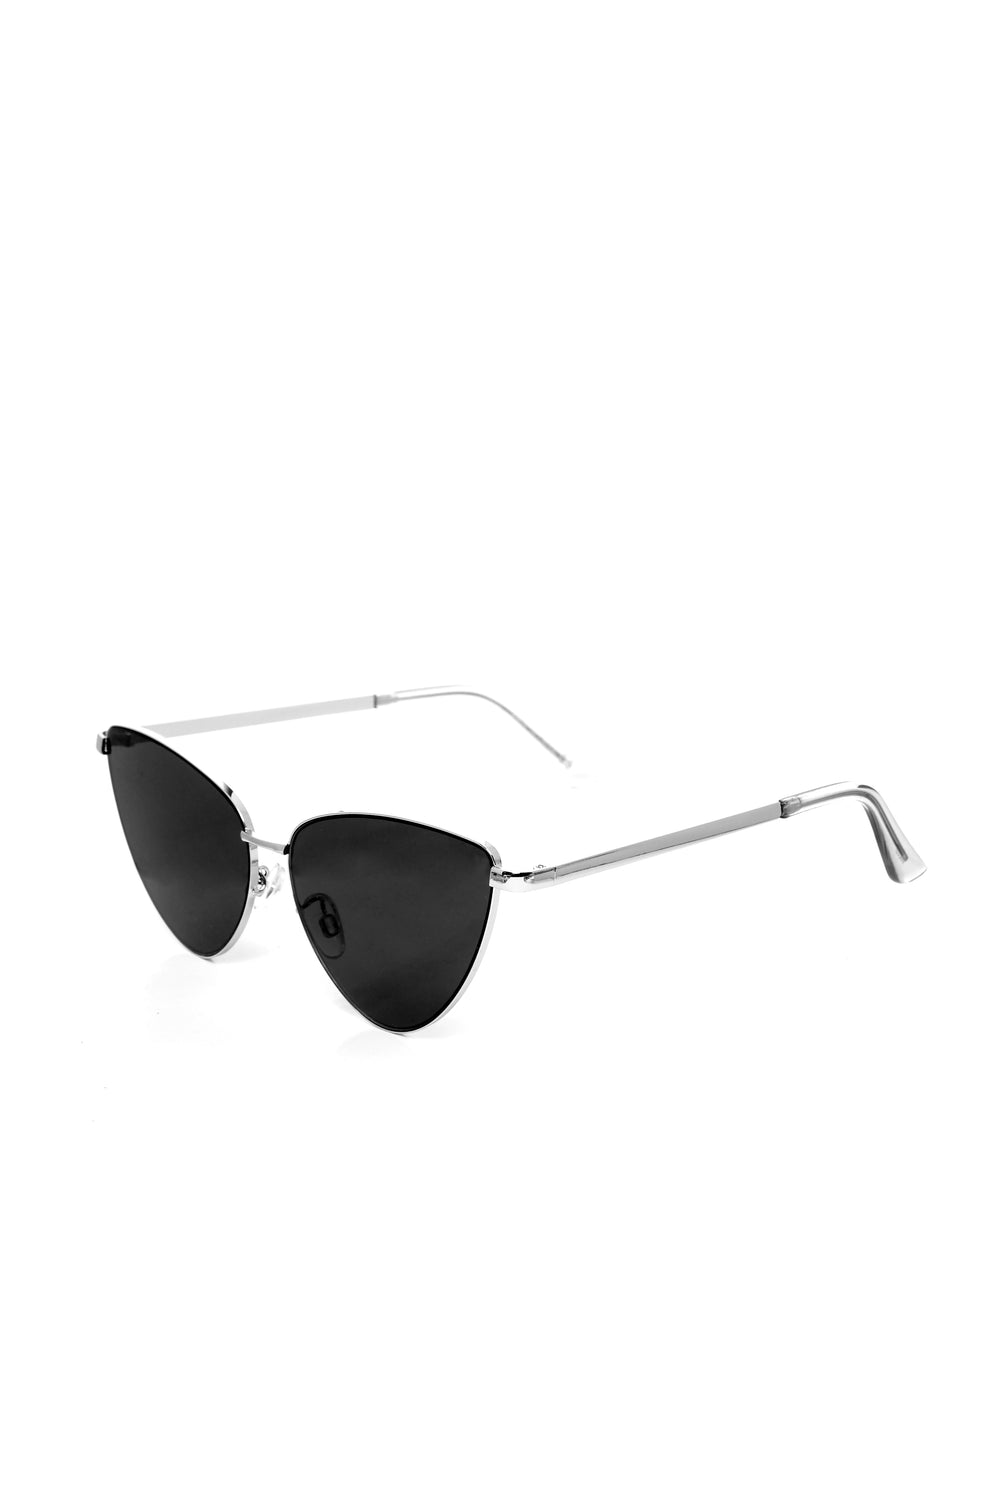 Hanalei Bay Sunglasses - Silver/Black